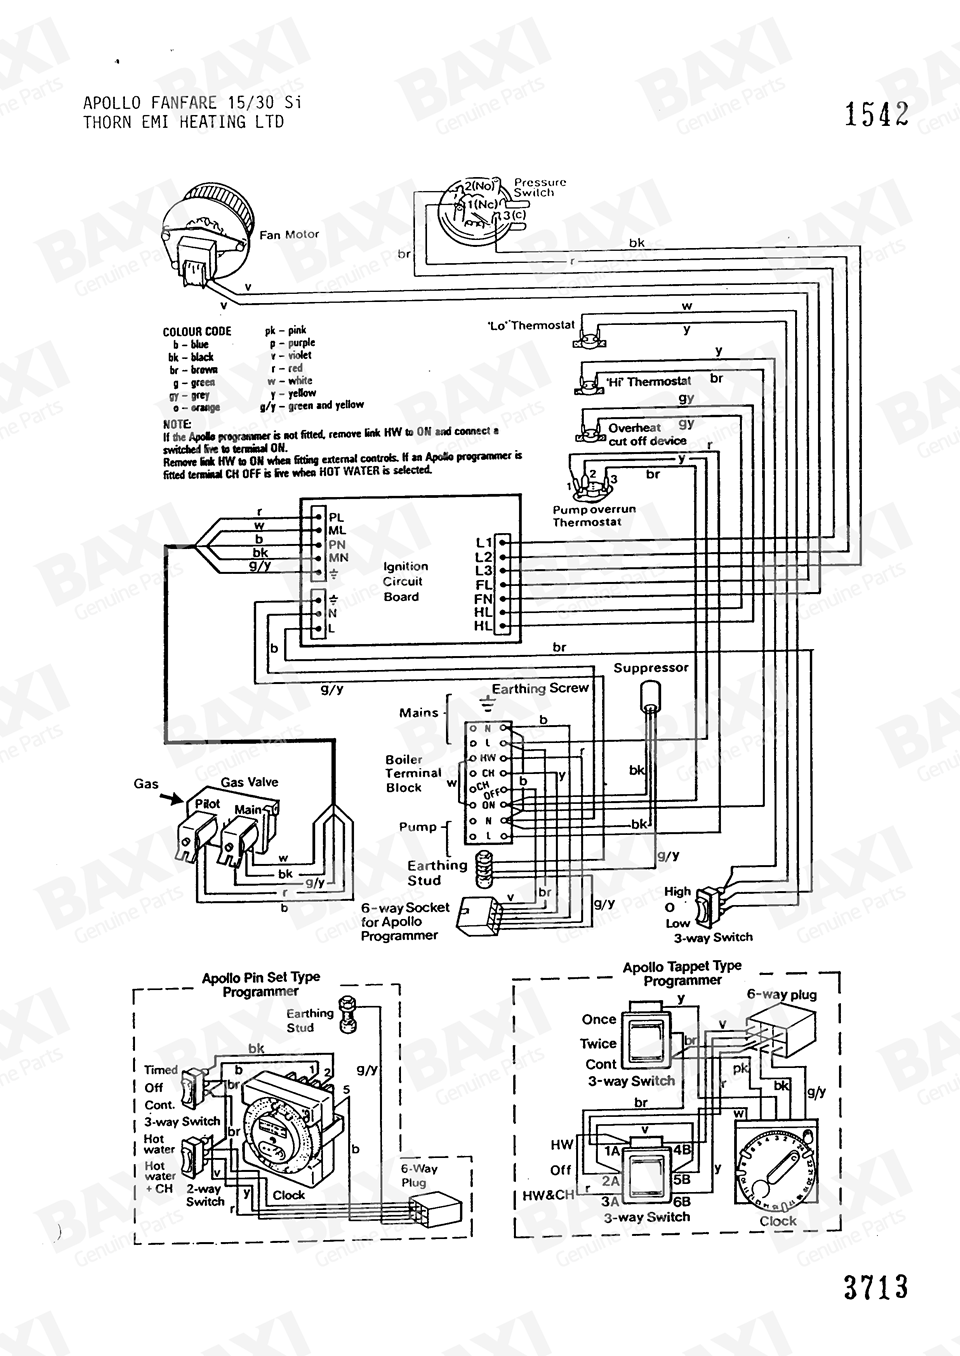 [DIAGRAM] Wiring Diagram For 3 Pick Up 5 Way Switch FULL